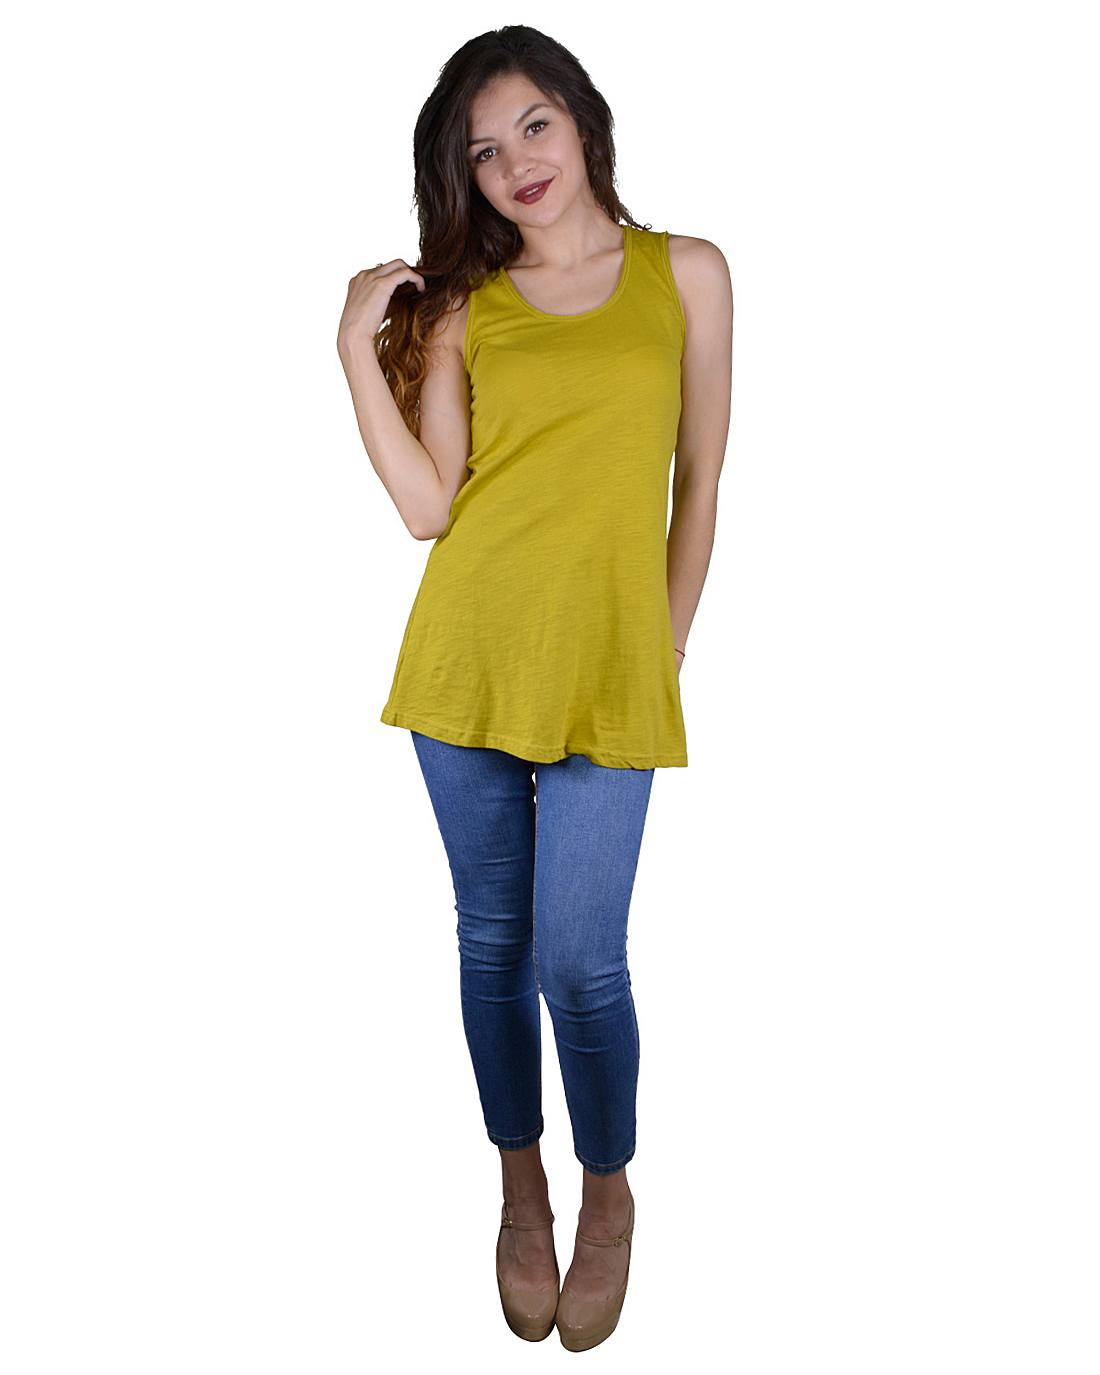 Solid Sleeveless Tunic Top with Stylish Back Design